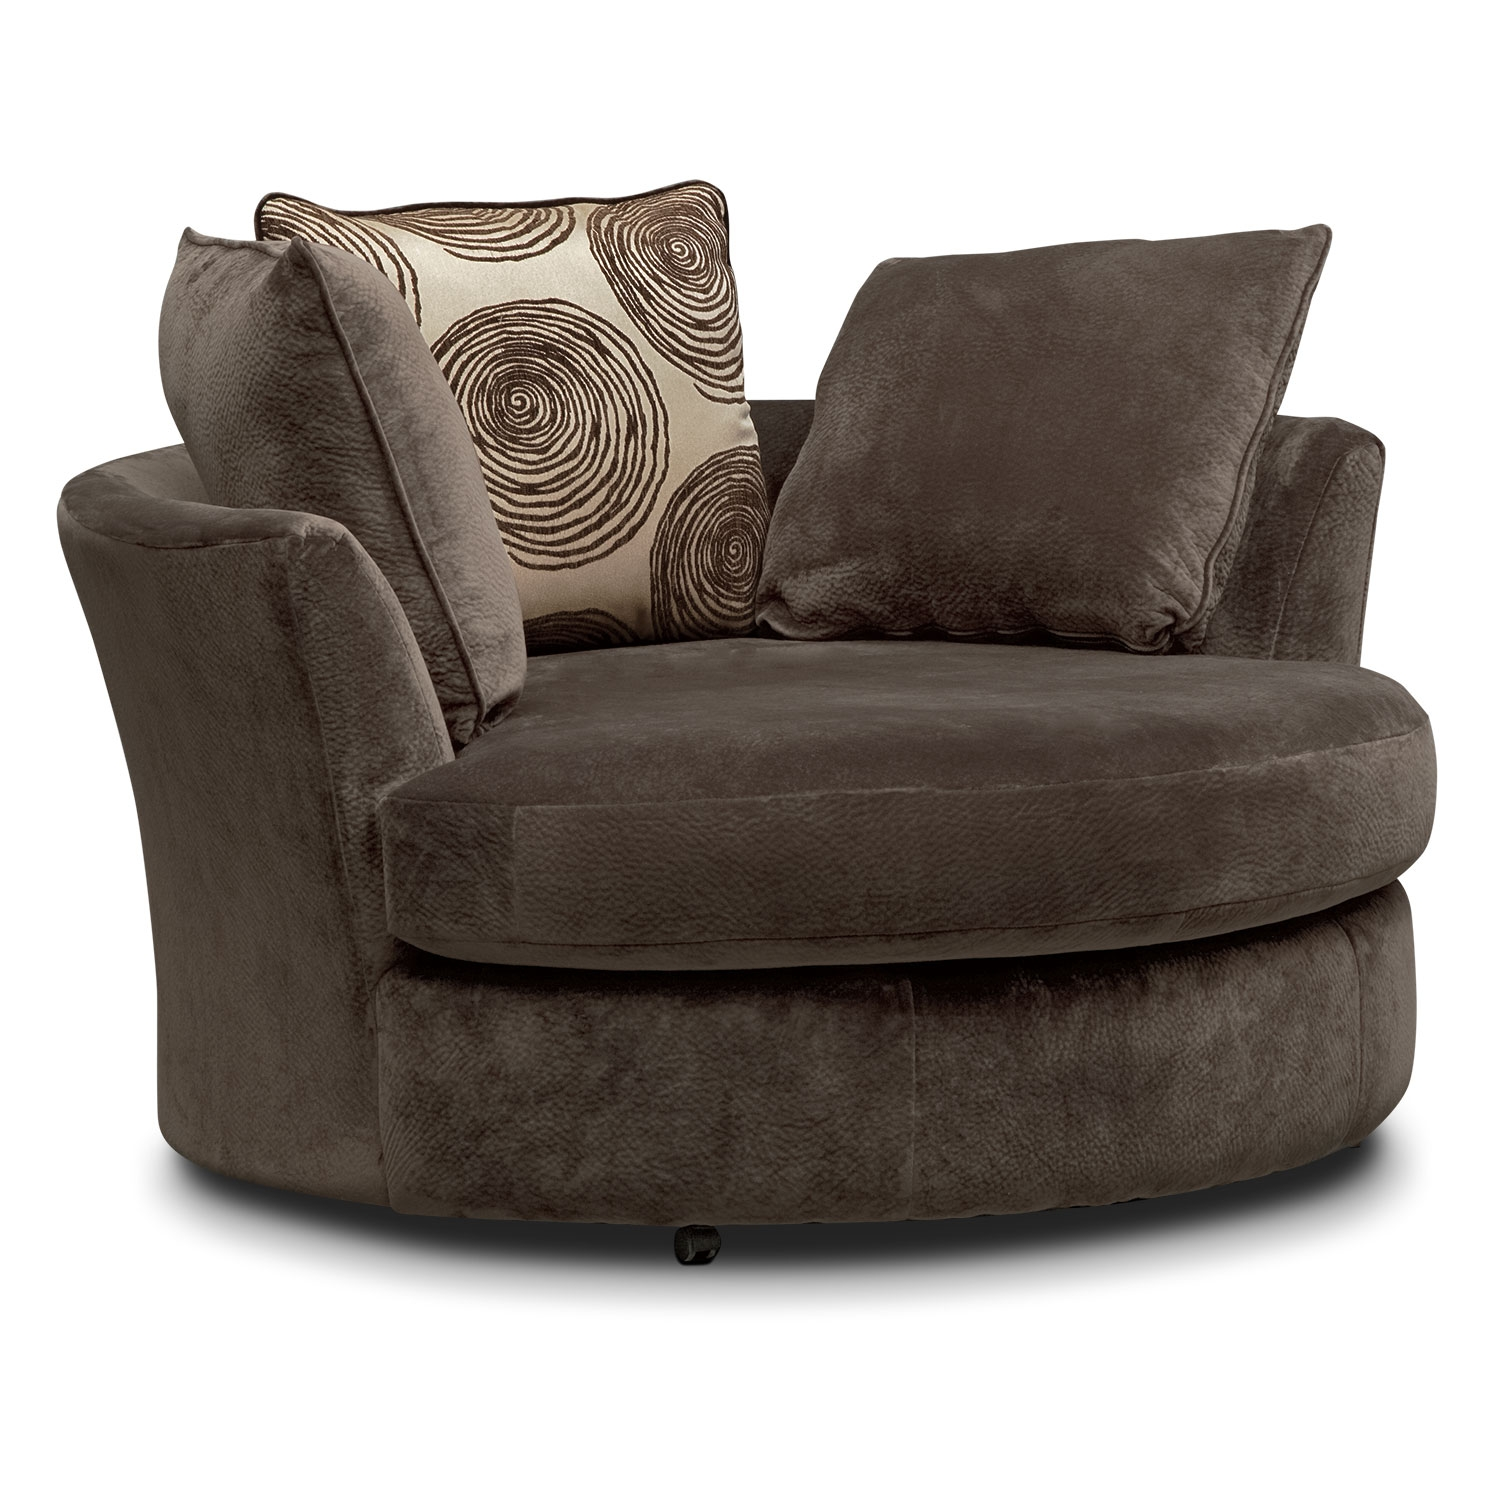 Cordelle Sofa And Swivel Chair Set Chocolate Value City Furniture With Sofa With Swivel Chair (View 2 of 15)